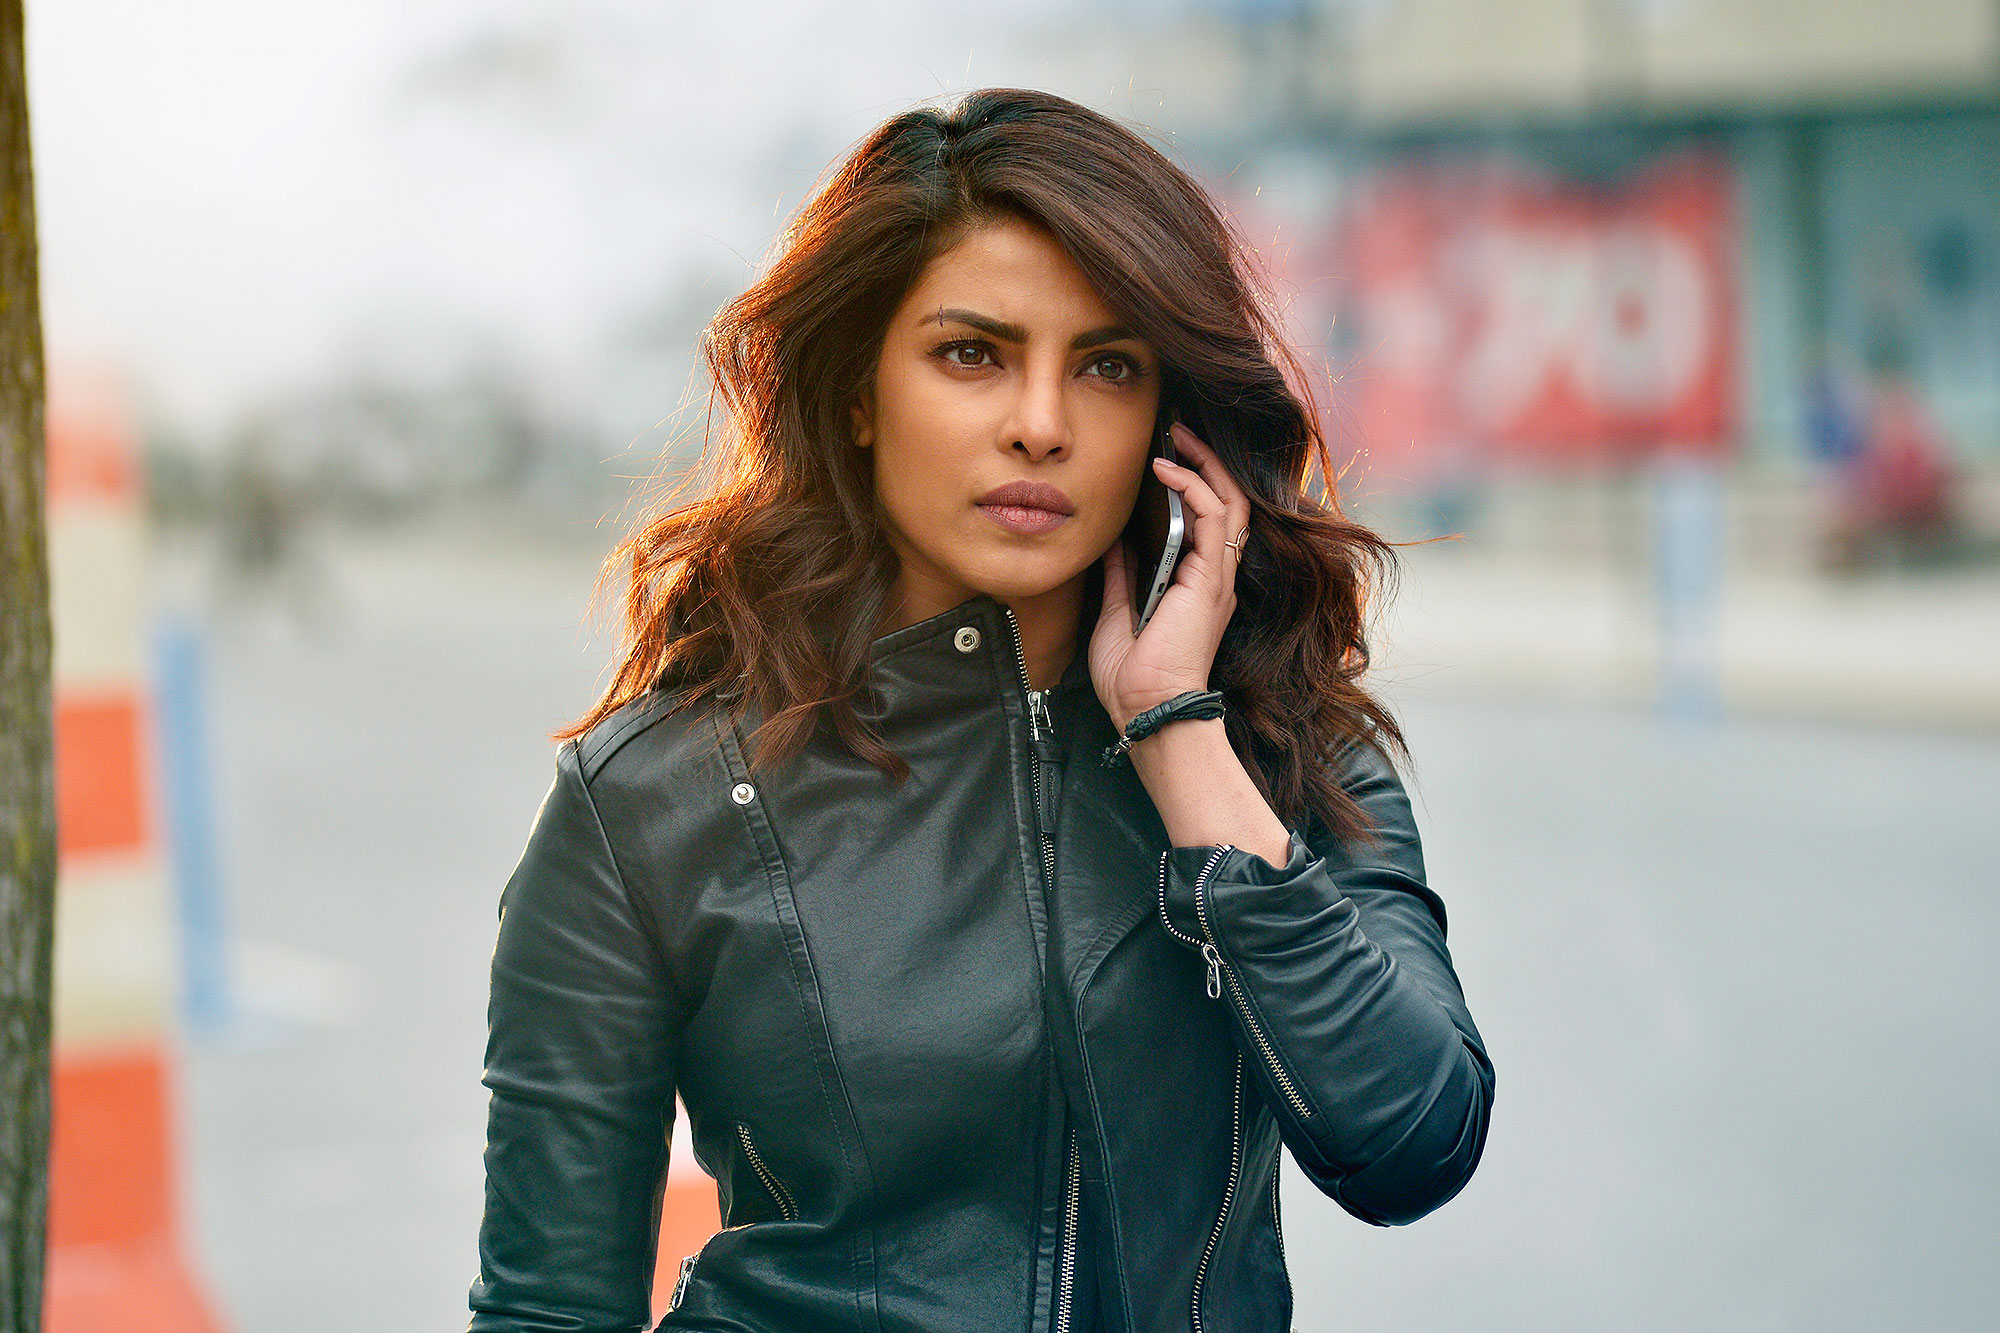 Quantico Yes Its Graduation Day For The Nats Of Quantico While In The Future Alex And Her Team Find Themselves Head To Head With The Terrorist On